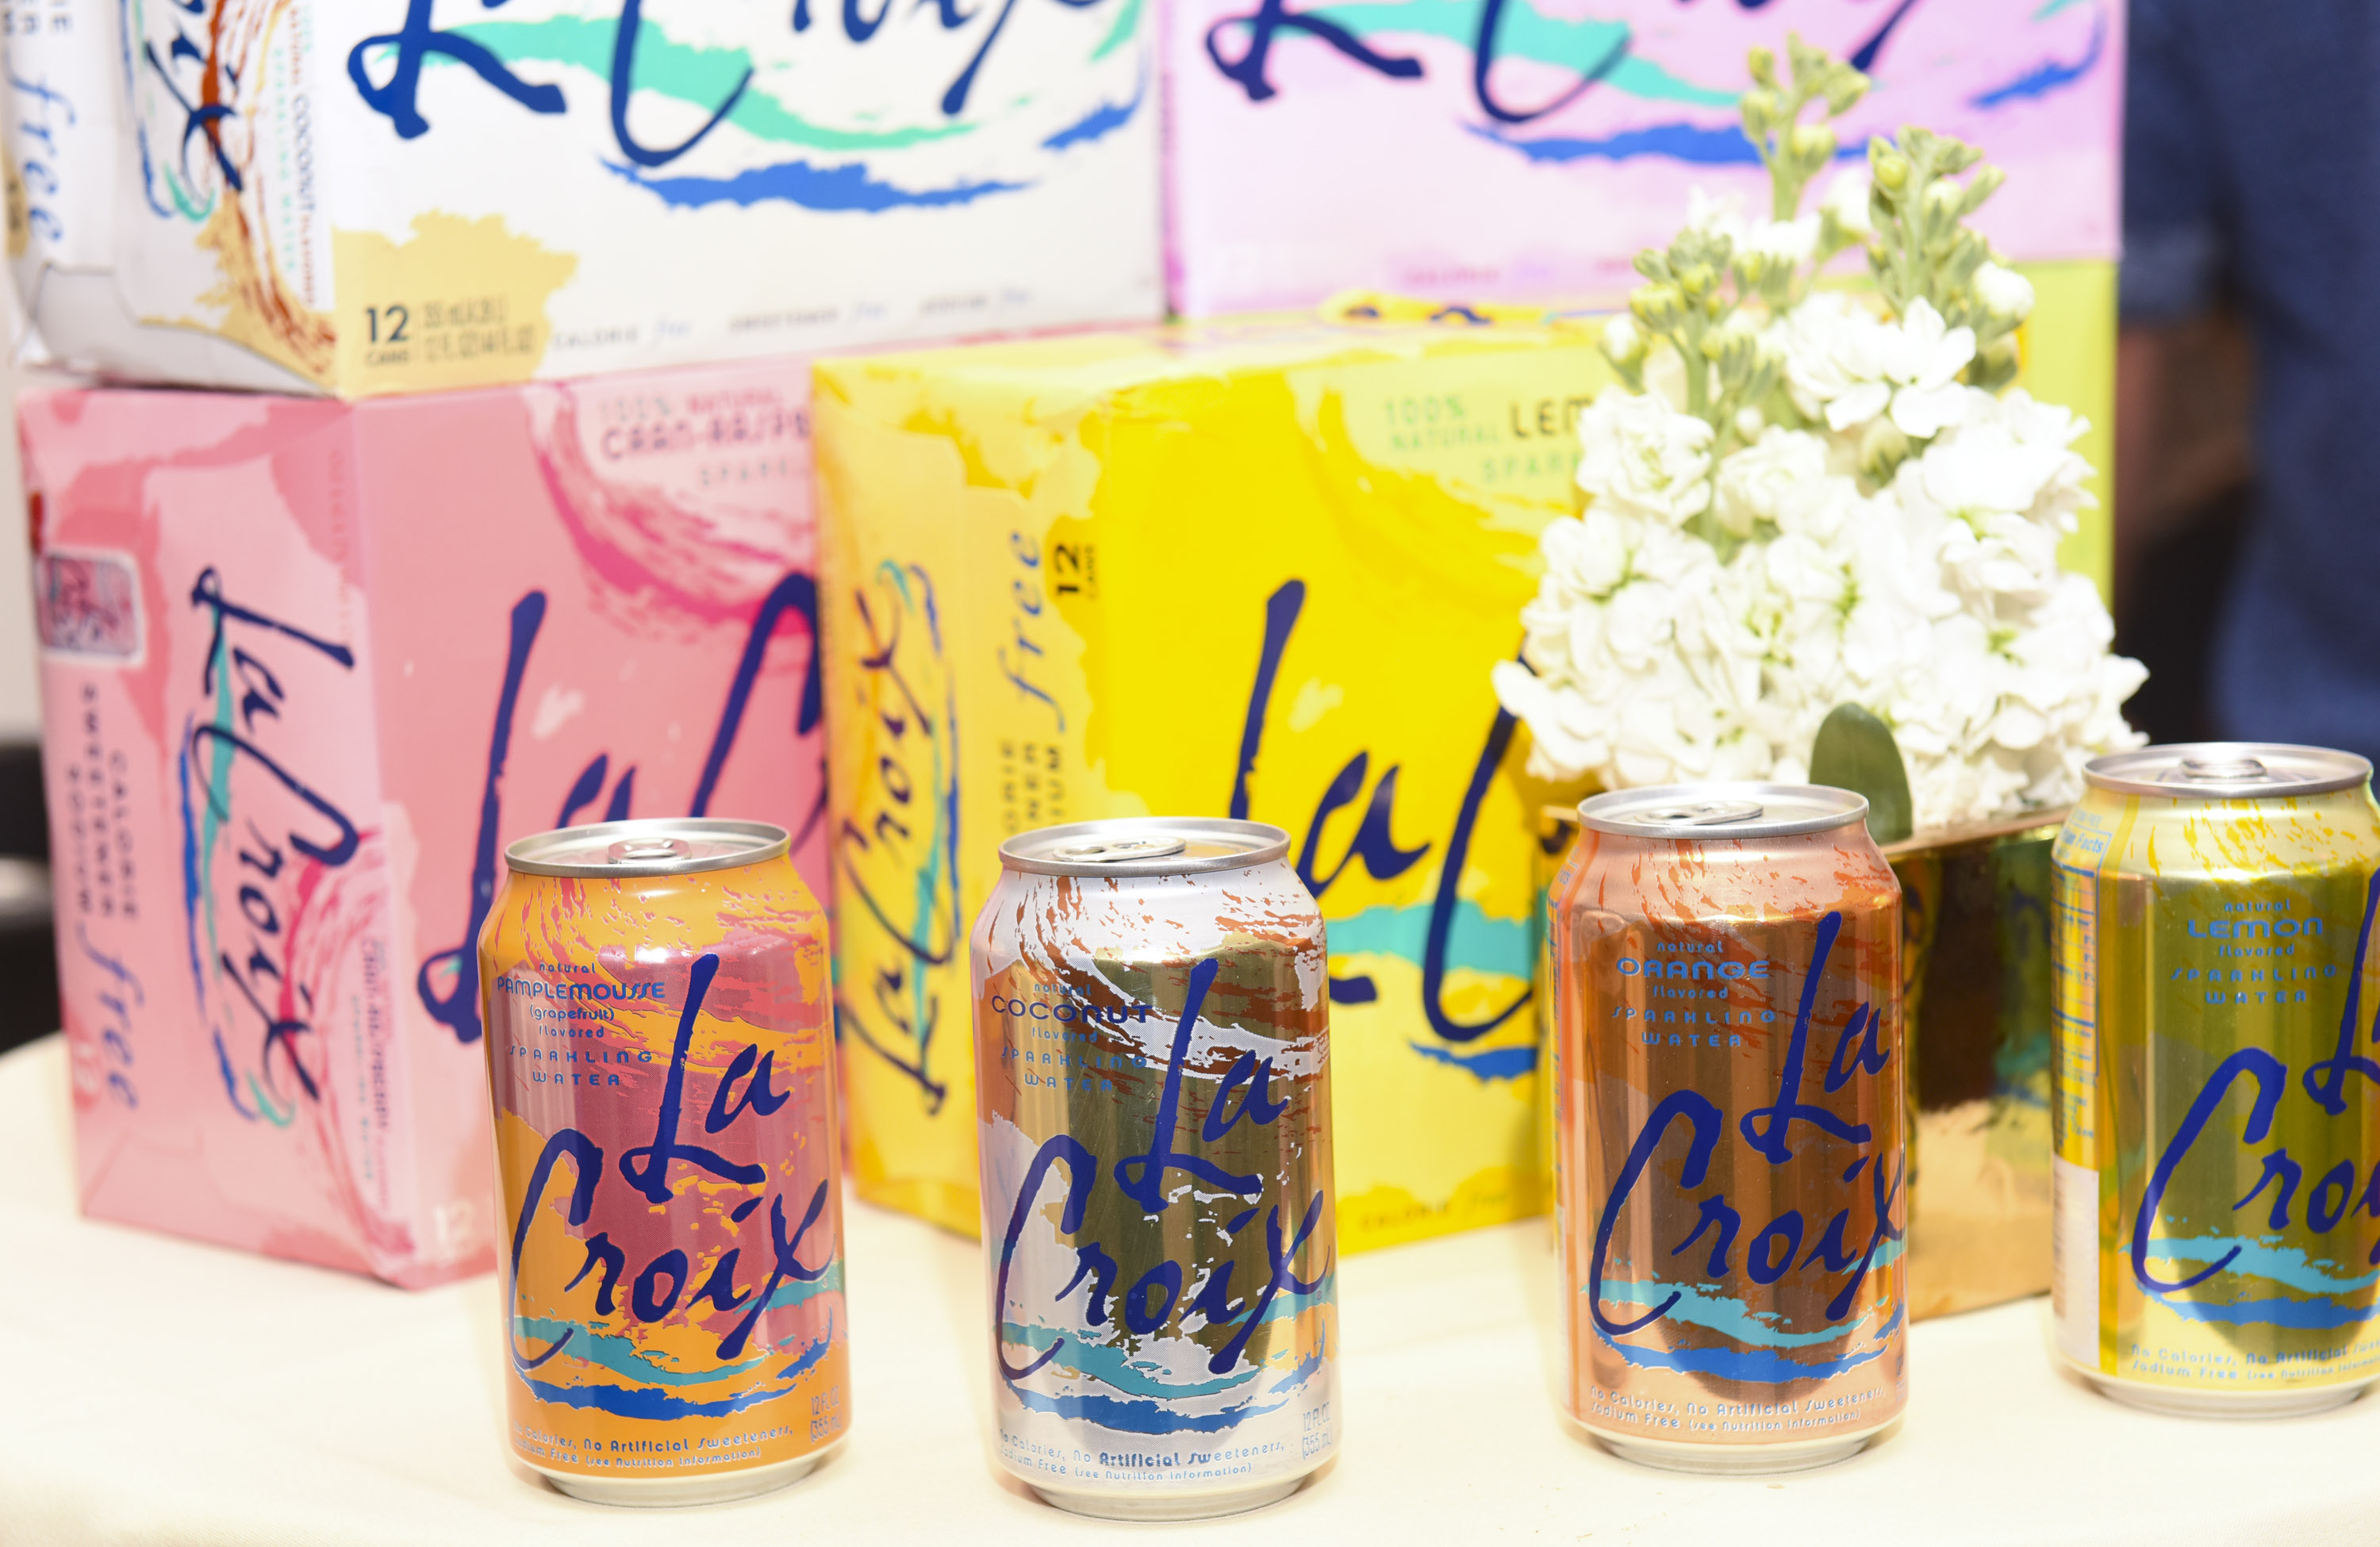 BEVERLY HILLS, CA - FEBRUARY 25:  LaCroix Sparkling Water at the ECOLUXE Pre-Oscars Celebrity Luxury Lounge on February 25, 2016 in Beverly Hills, California.